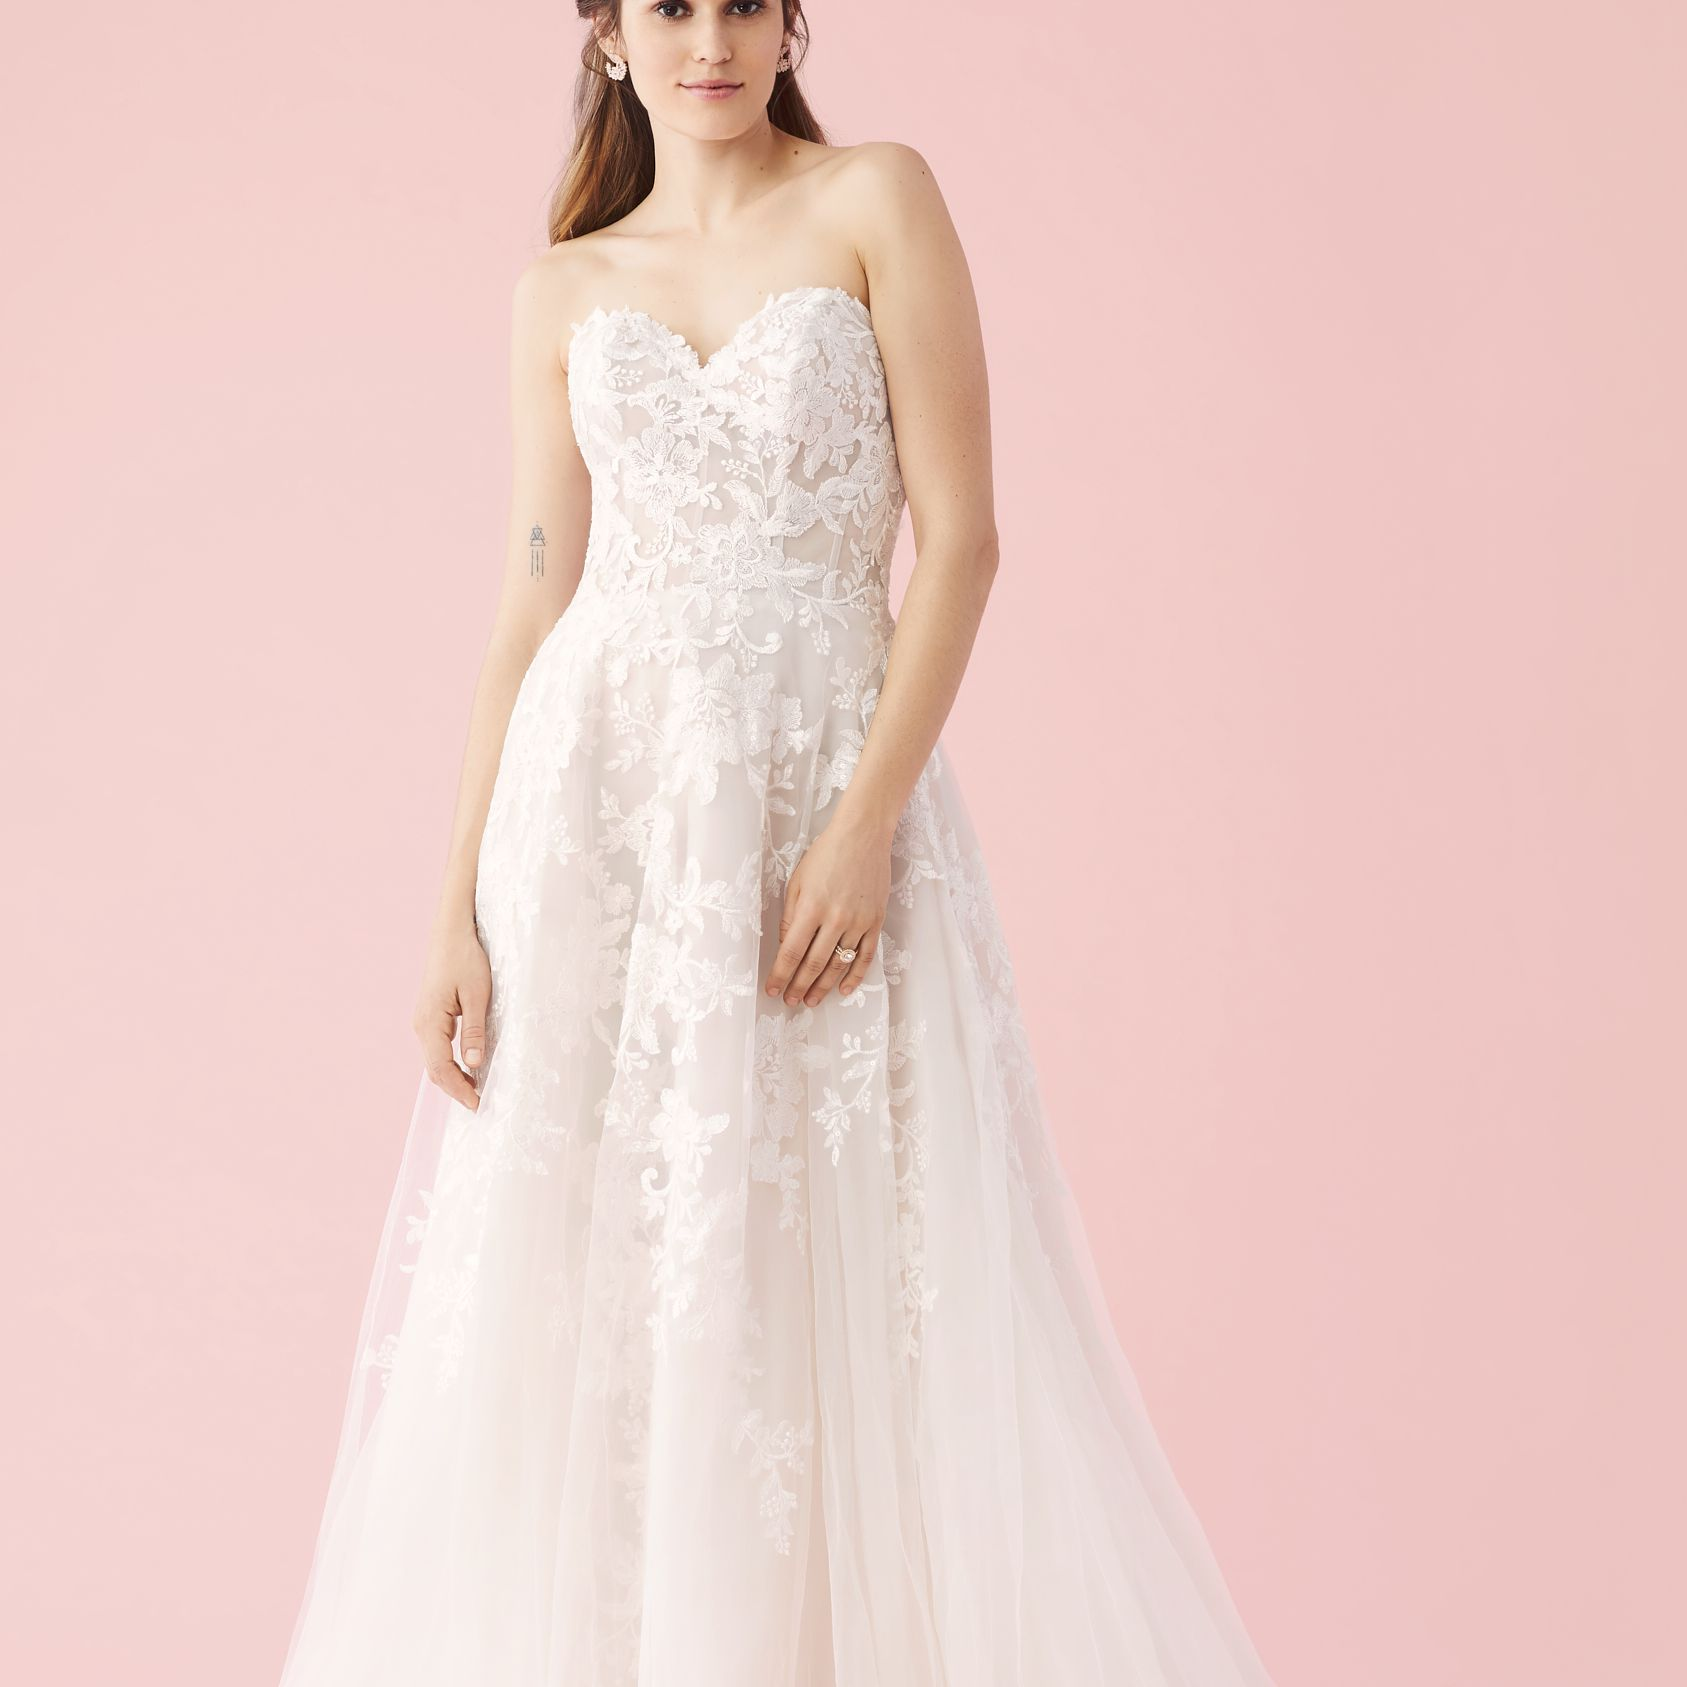 Finding The Perfect Wedding Dress For A Modern Day Fairy